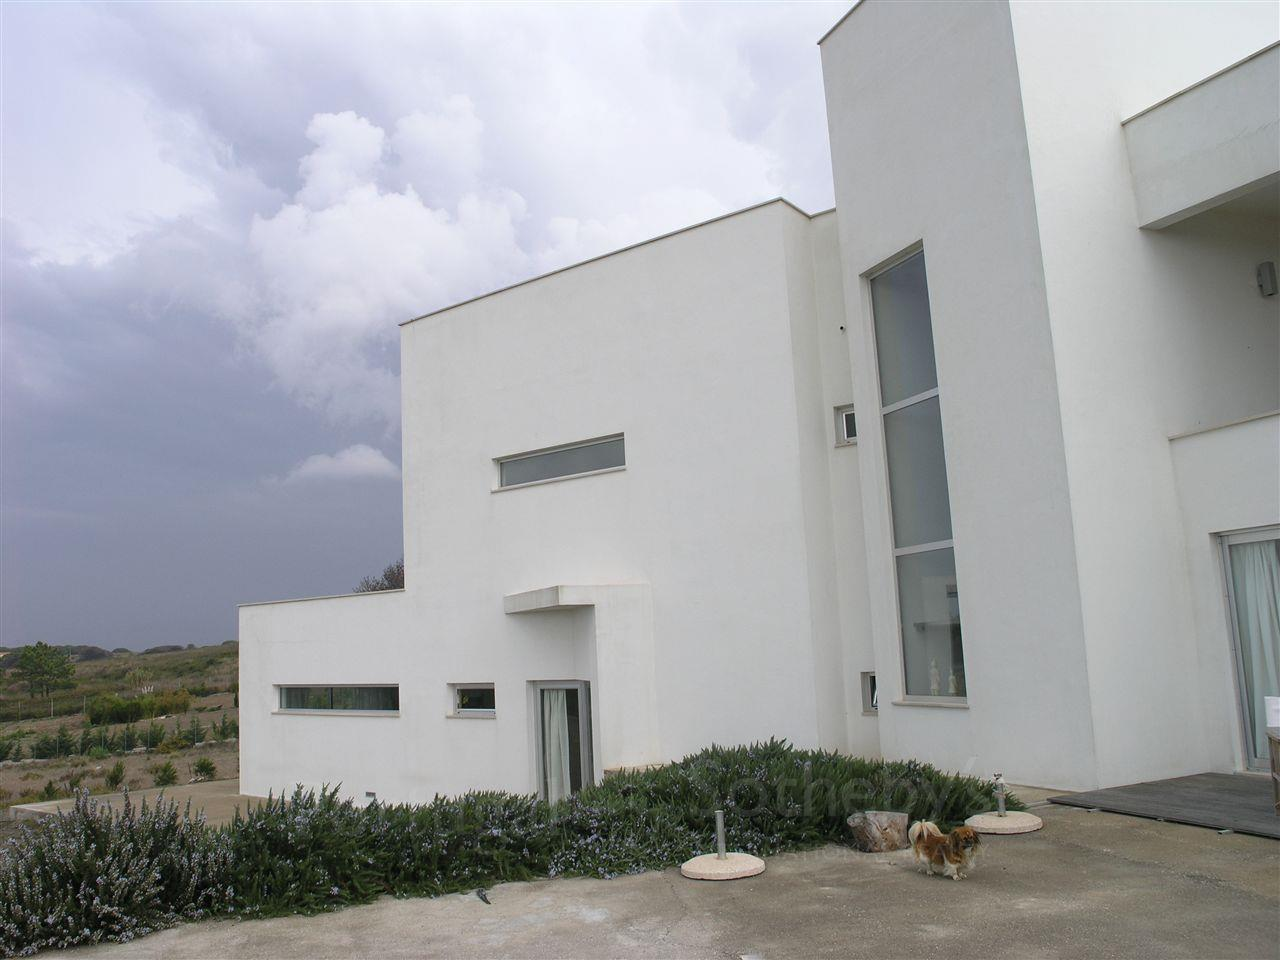 Tek Ailelik Ev için Satış at Detached house, 5 bedrooms, for Sale Sintra, Lisboa Portekiz